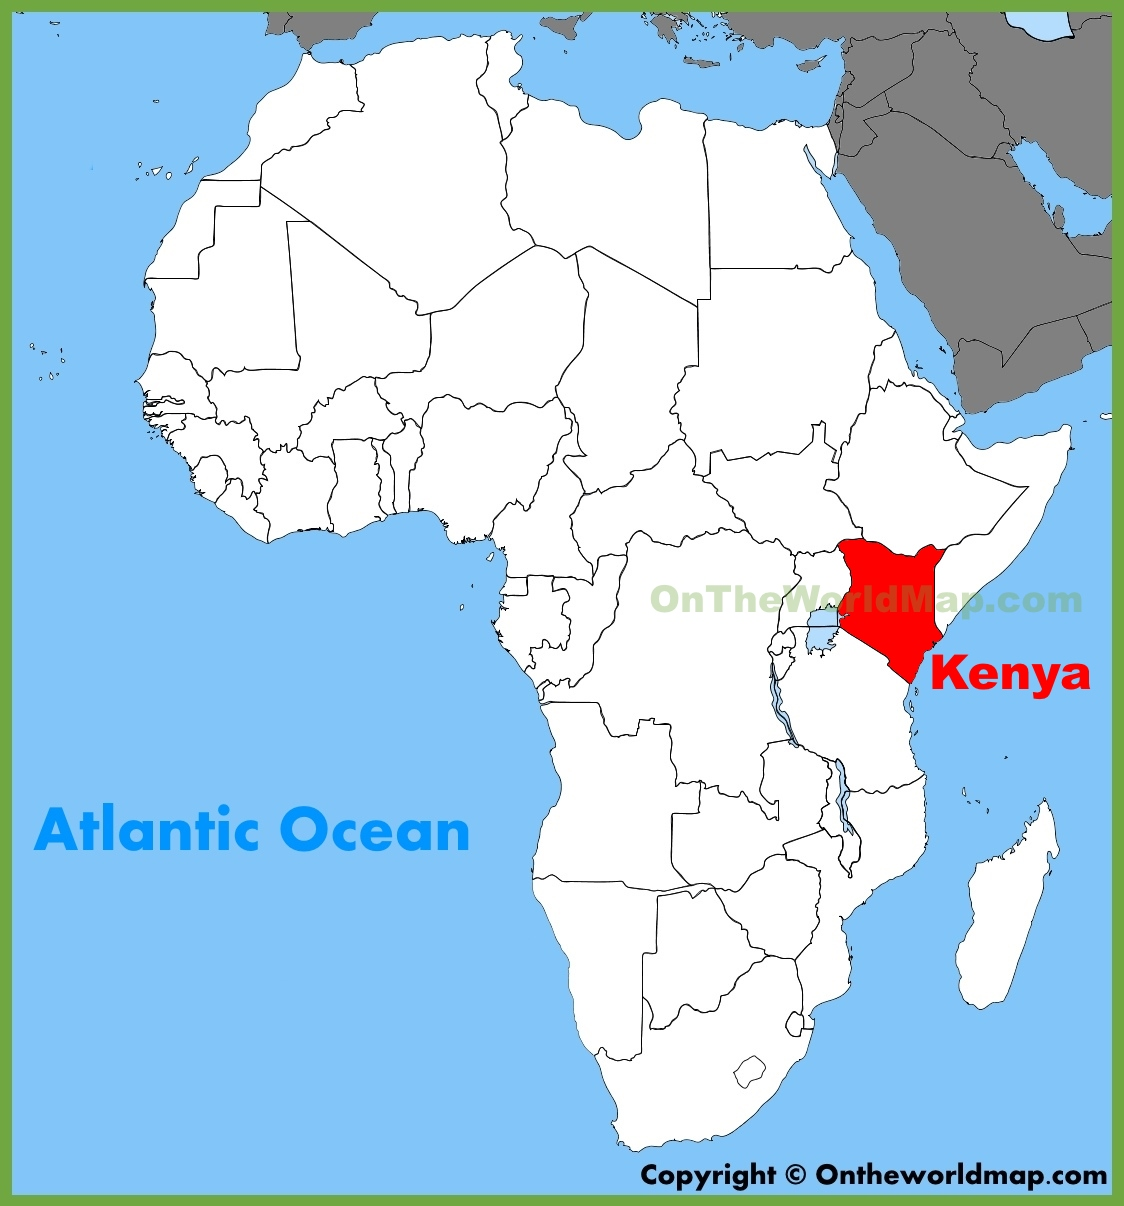 Map Of Kenya Africa Kenya location on the Africa map